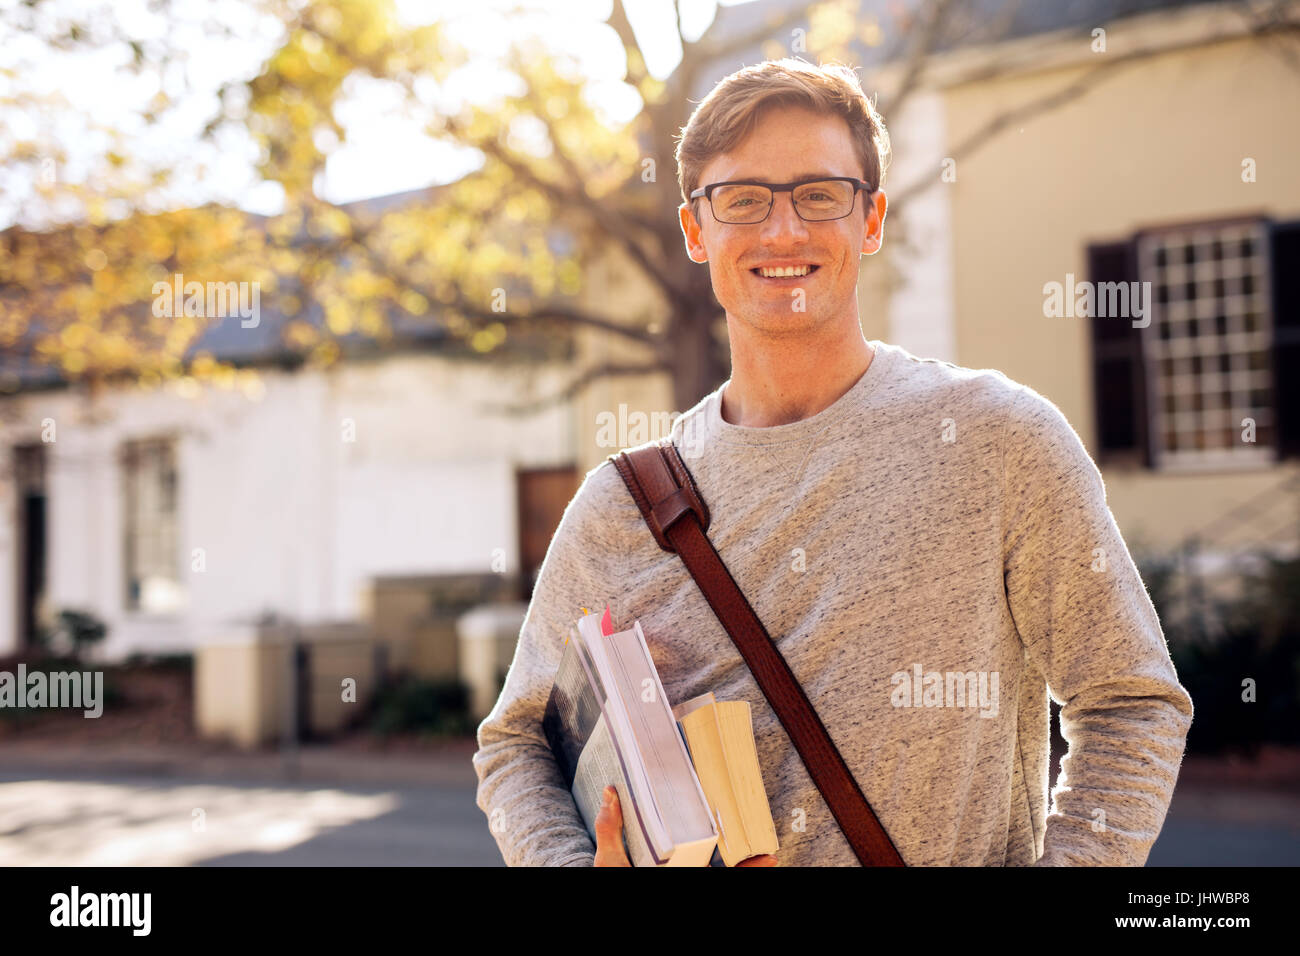 Happy male college student outdoors with books. Young university student with books in campus. - Stock Image